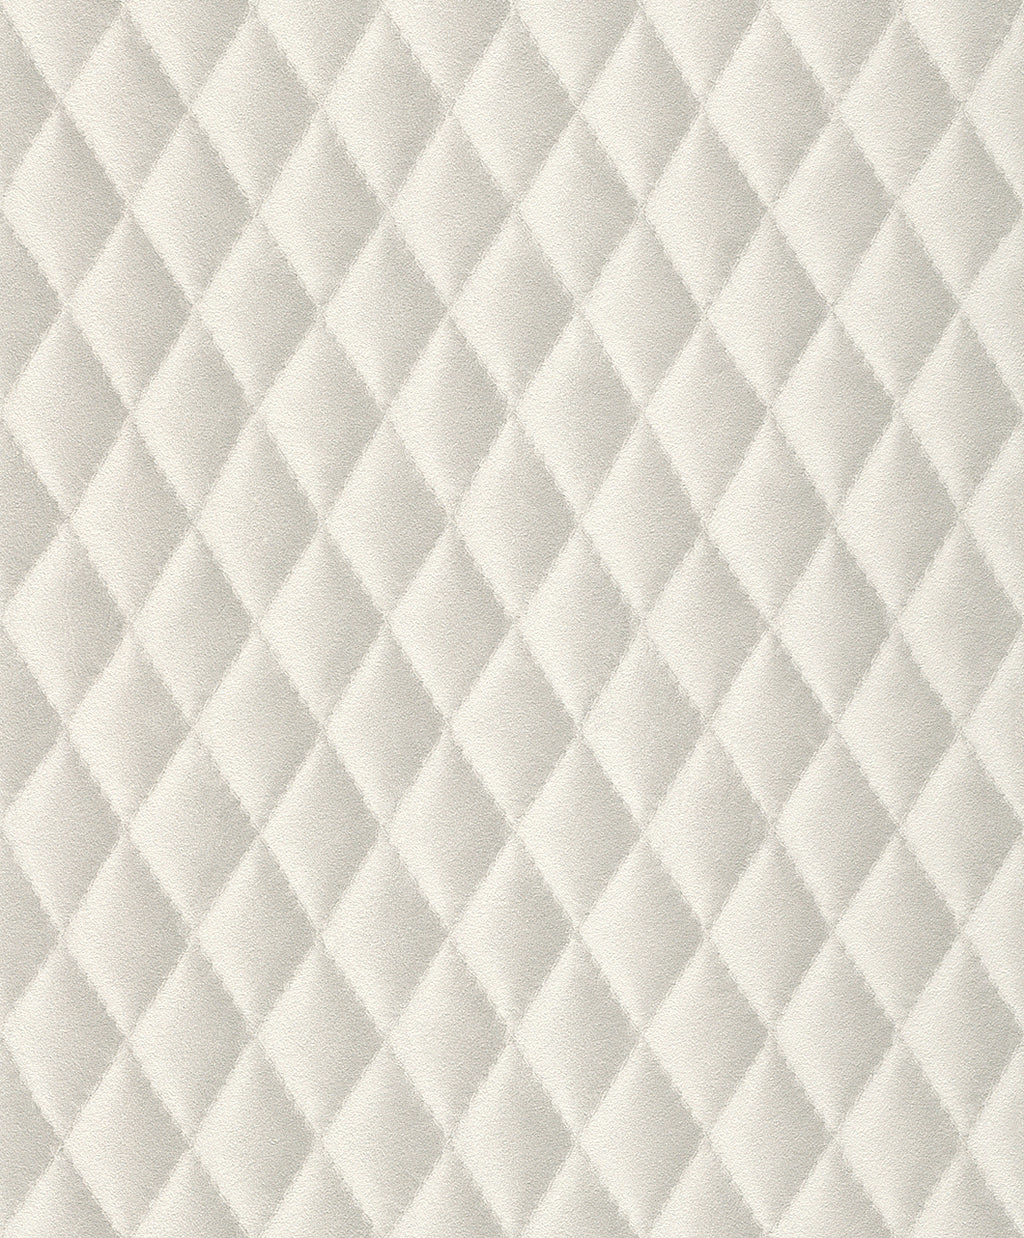 Faux Stitched White Diamond Cushion Wallpaper R4385